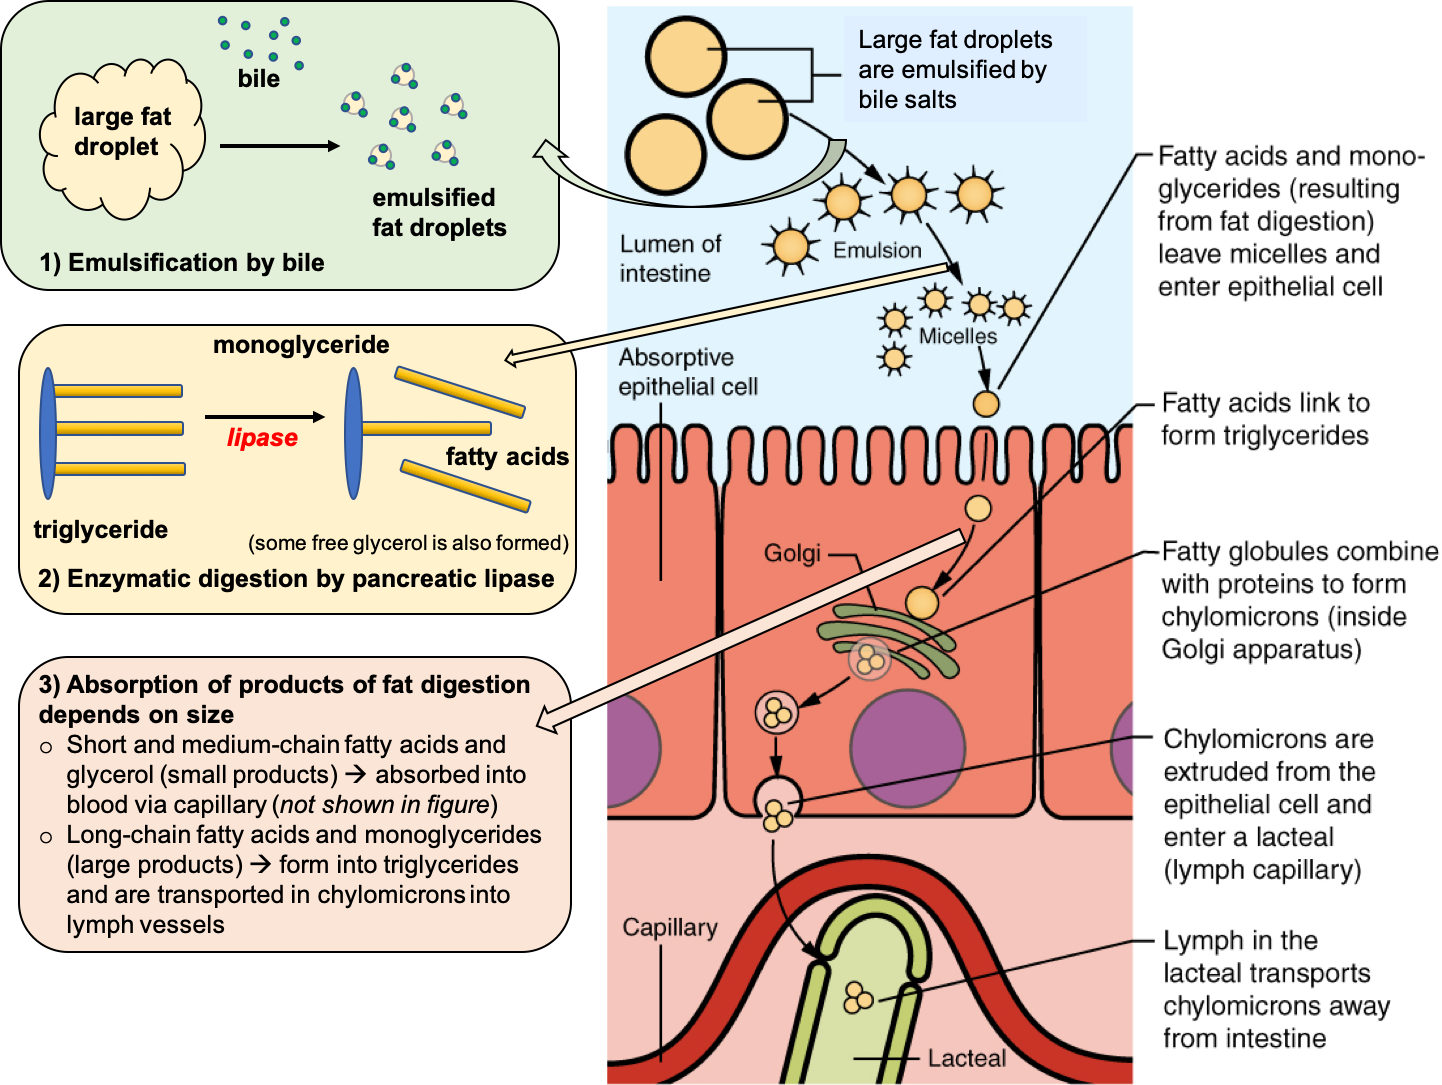 A cartoon diagram summarizes the steps of emulsification, enzymatic digestion, and absorption of lipids in the small intestine. The diagram shows large fat droplets being emulsified to smaller droplets, then being incorporated into micelles in order to bring them to the edge of the enterocytes. Then, fatty acids are absorbed into the enterocytes and incorporated into chylomicrons in the golgi of the cell, finally being absorbed into the lacteal to enter the lymph.